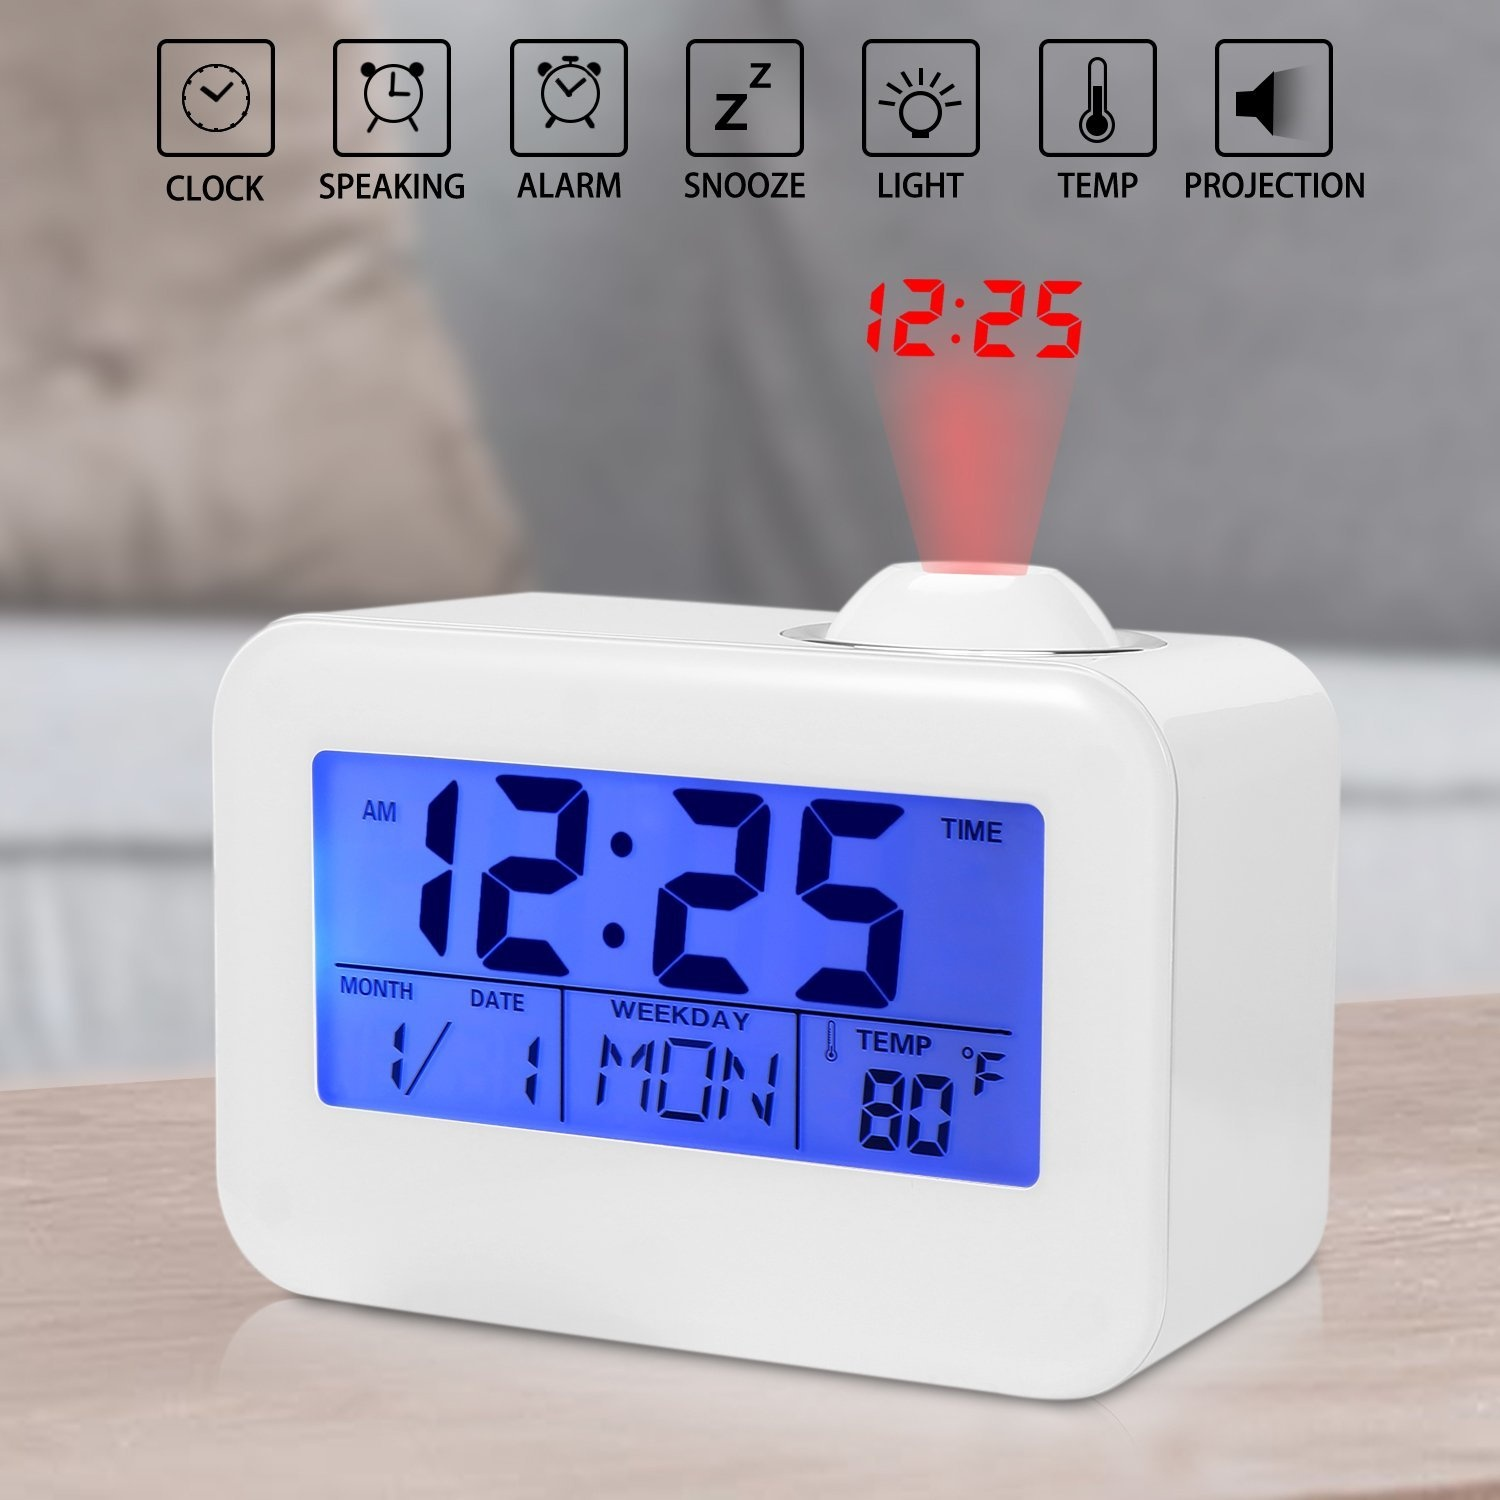 Projection clock ceiling alarm clock ceiling time projector projection clock ceiling alarm clock ceiling time projector digital clock with led backlightsnooze temperatureweekdate displaynot include battery mozeypictures Image collections